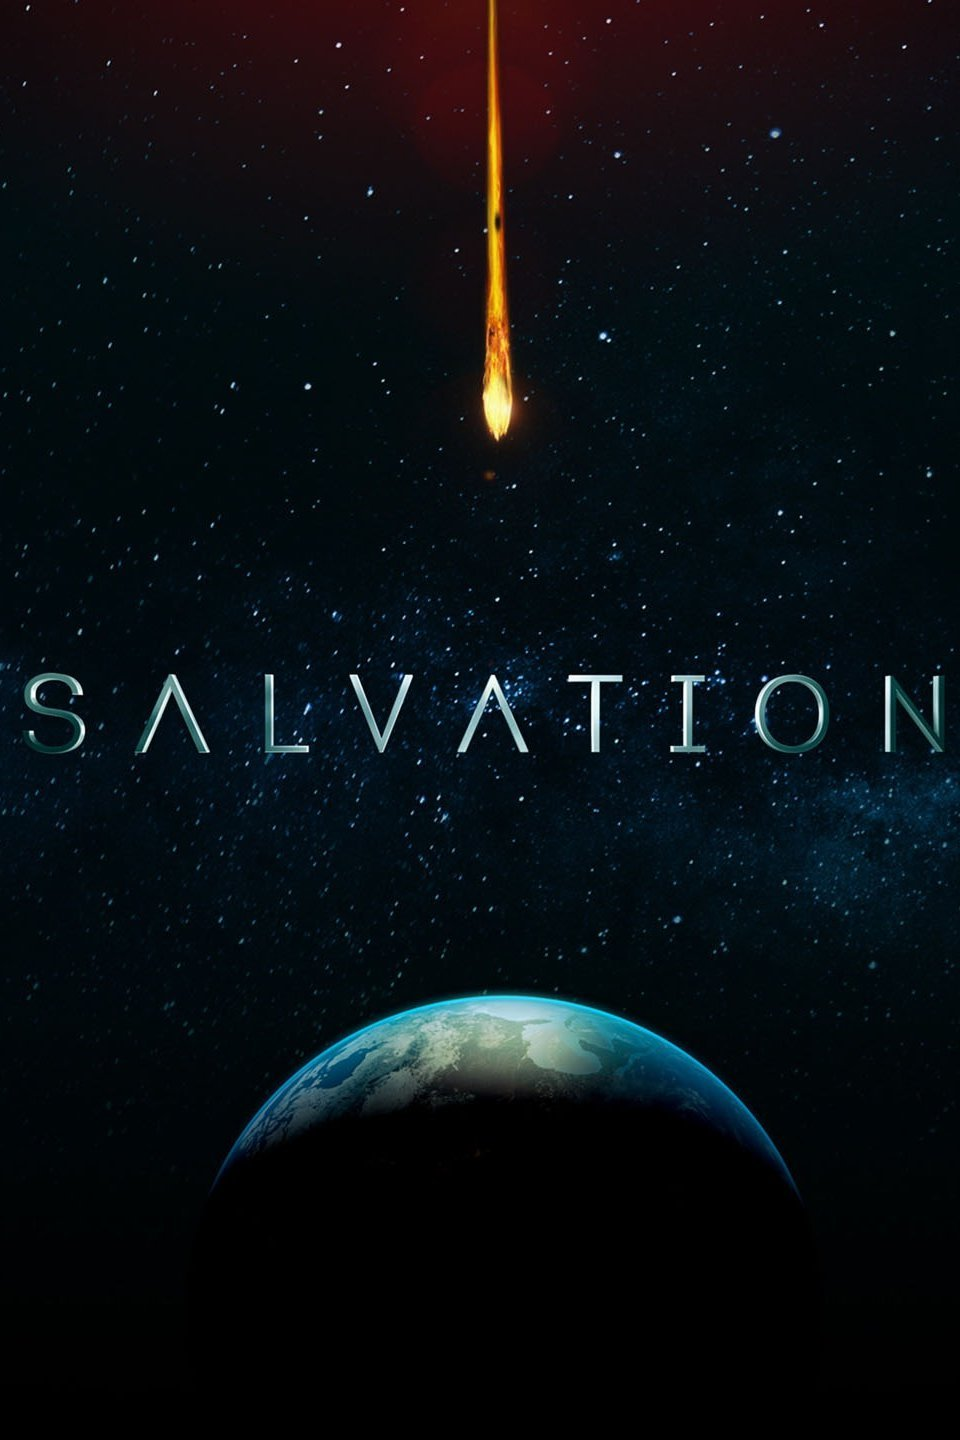 Salvation Season 2 Download HDTV (Episode 9 Added)